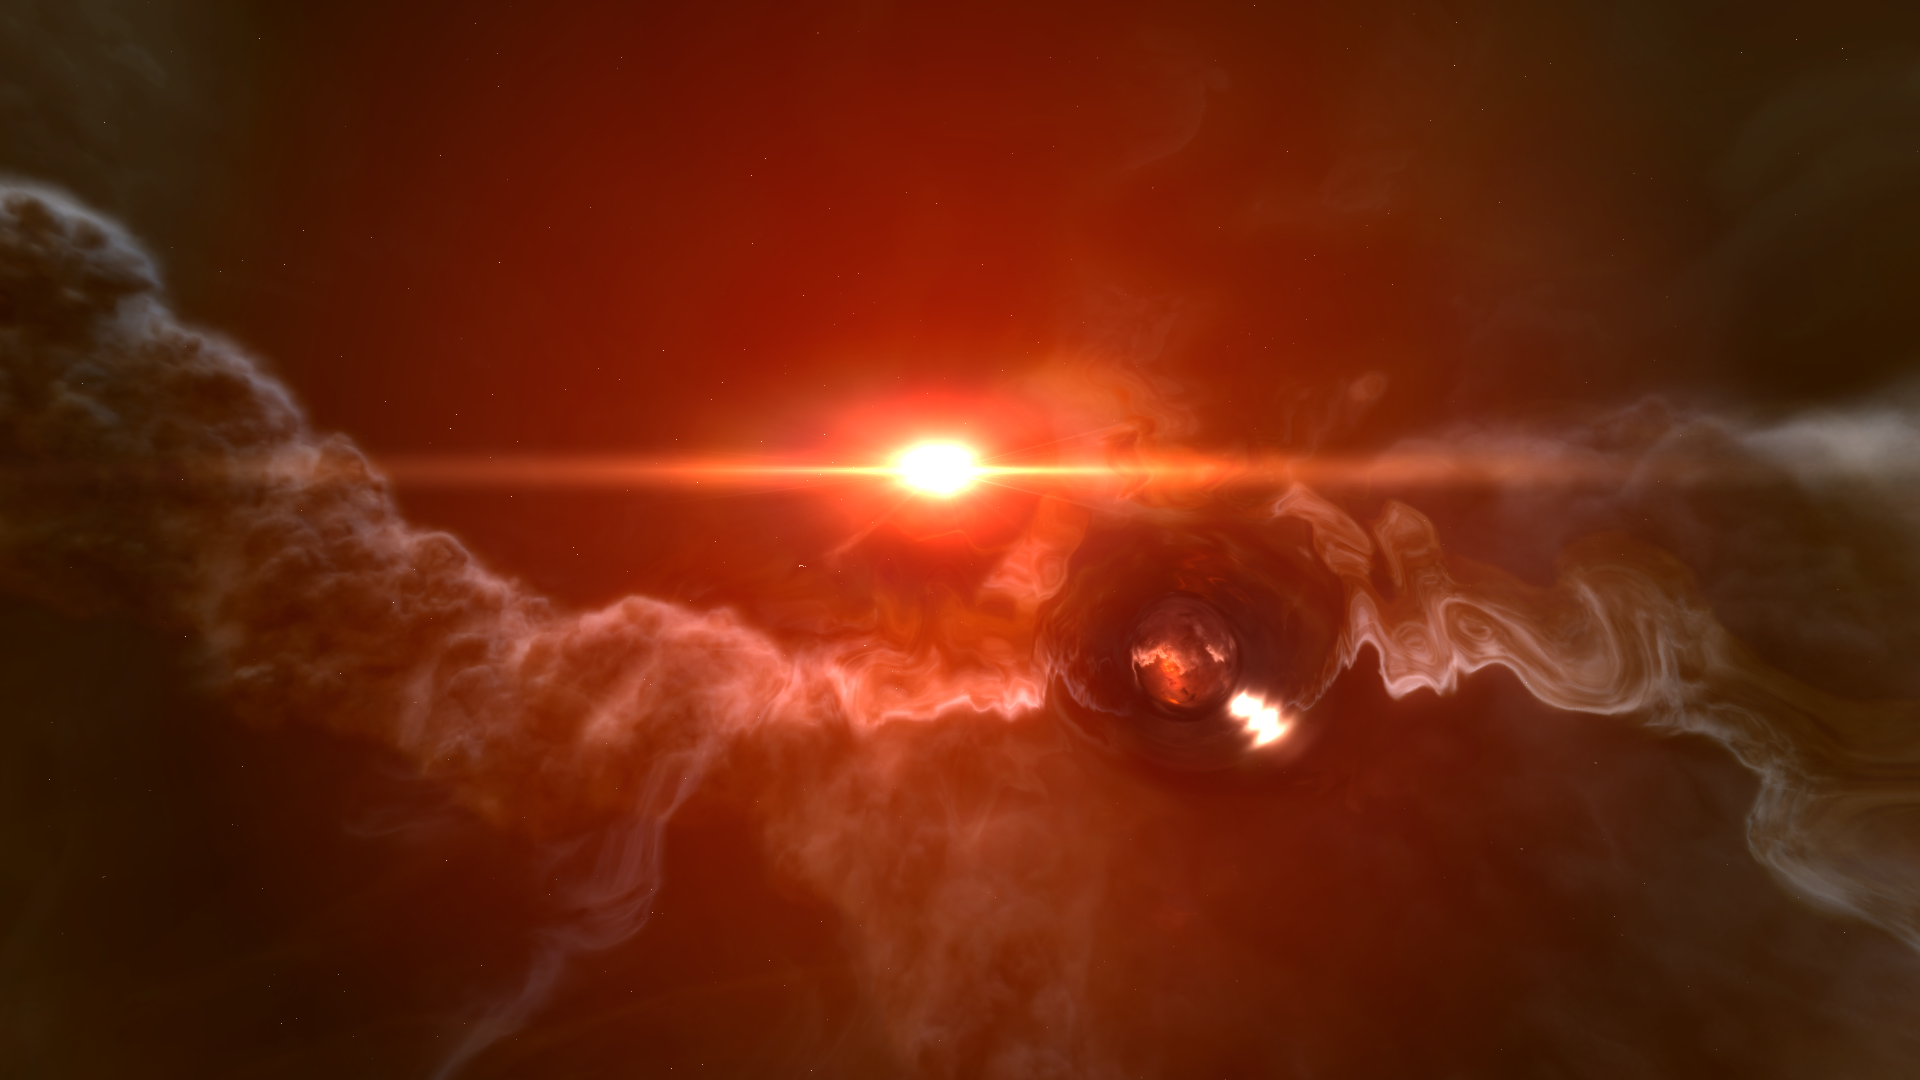 Artistic_EVE_Online___Wormhole_by_T3hpwn3r3r